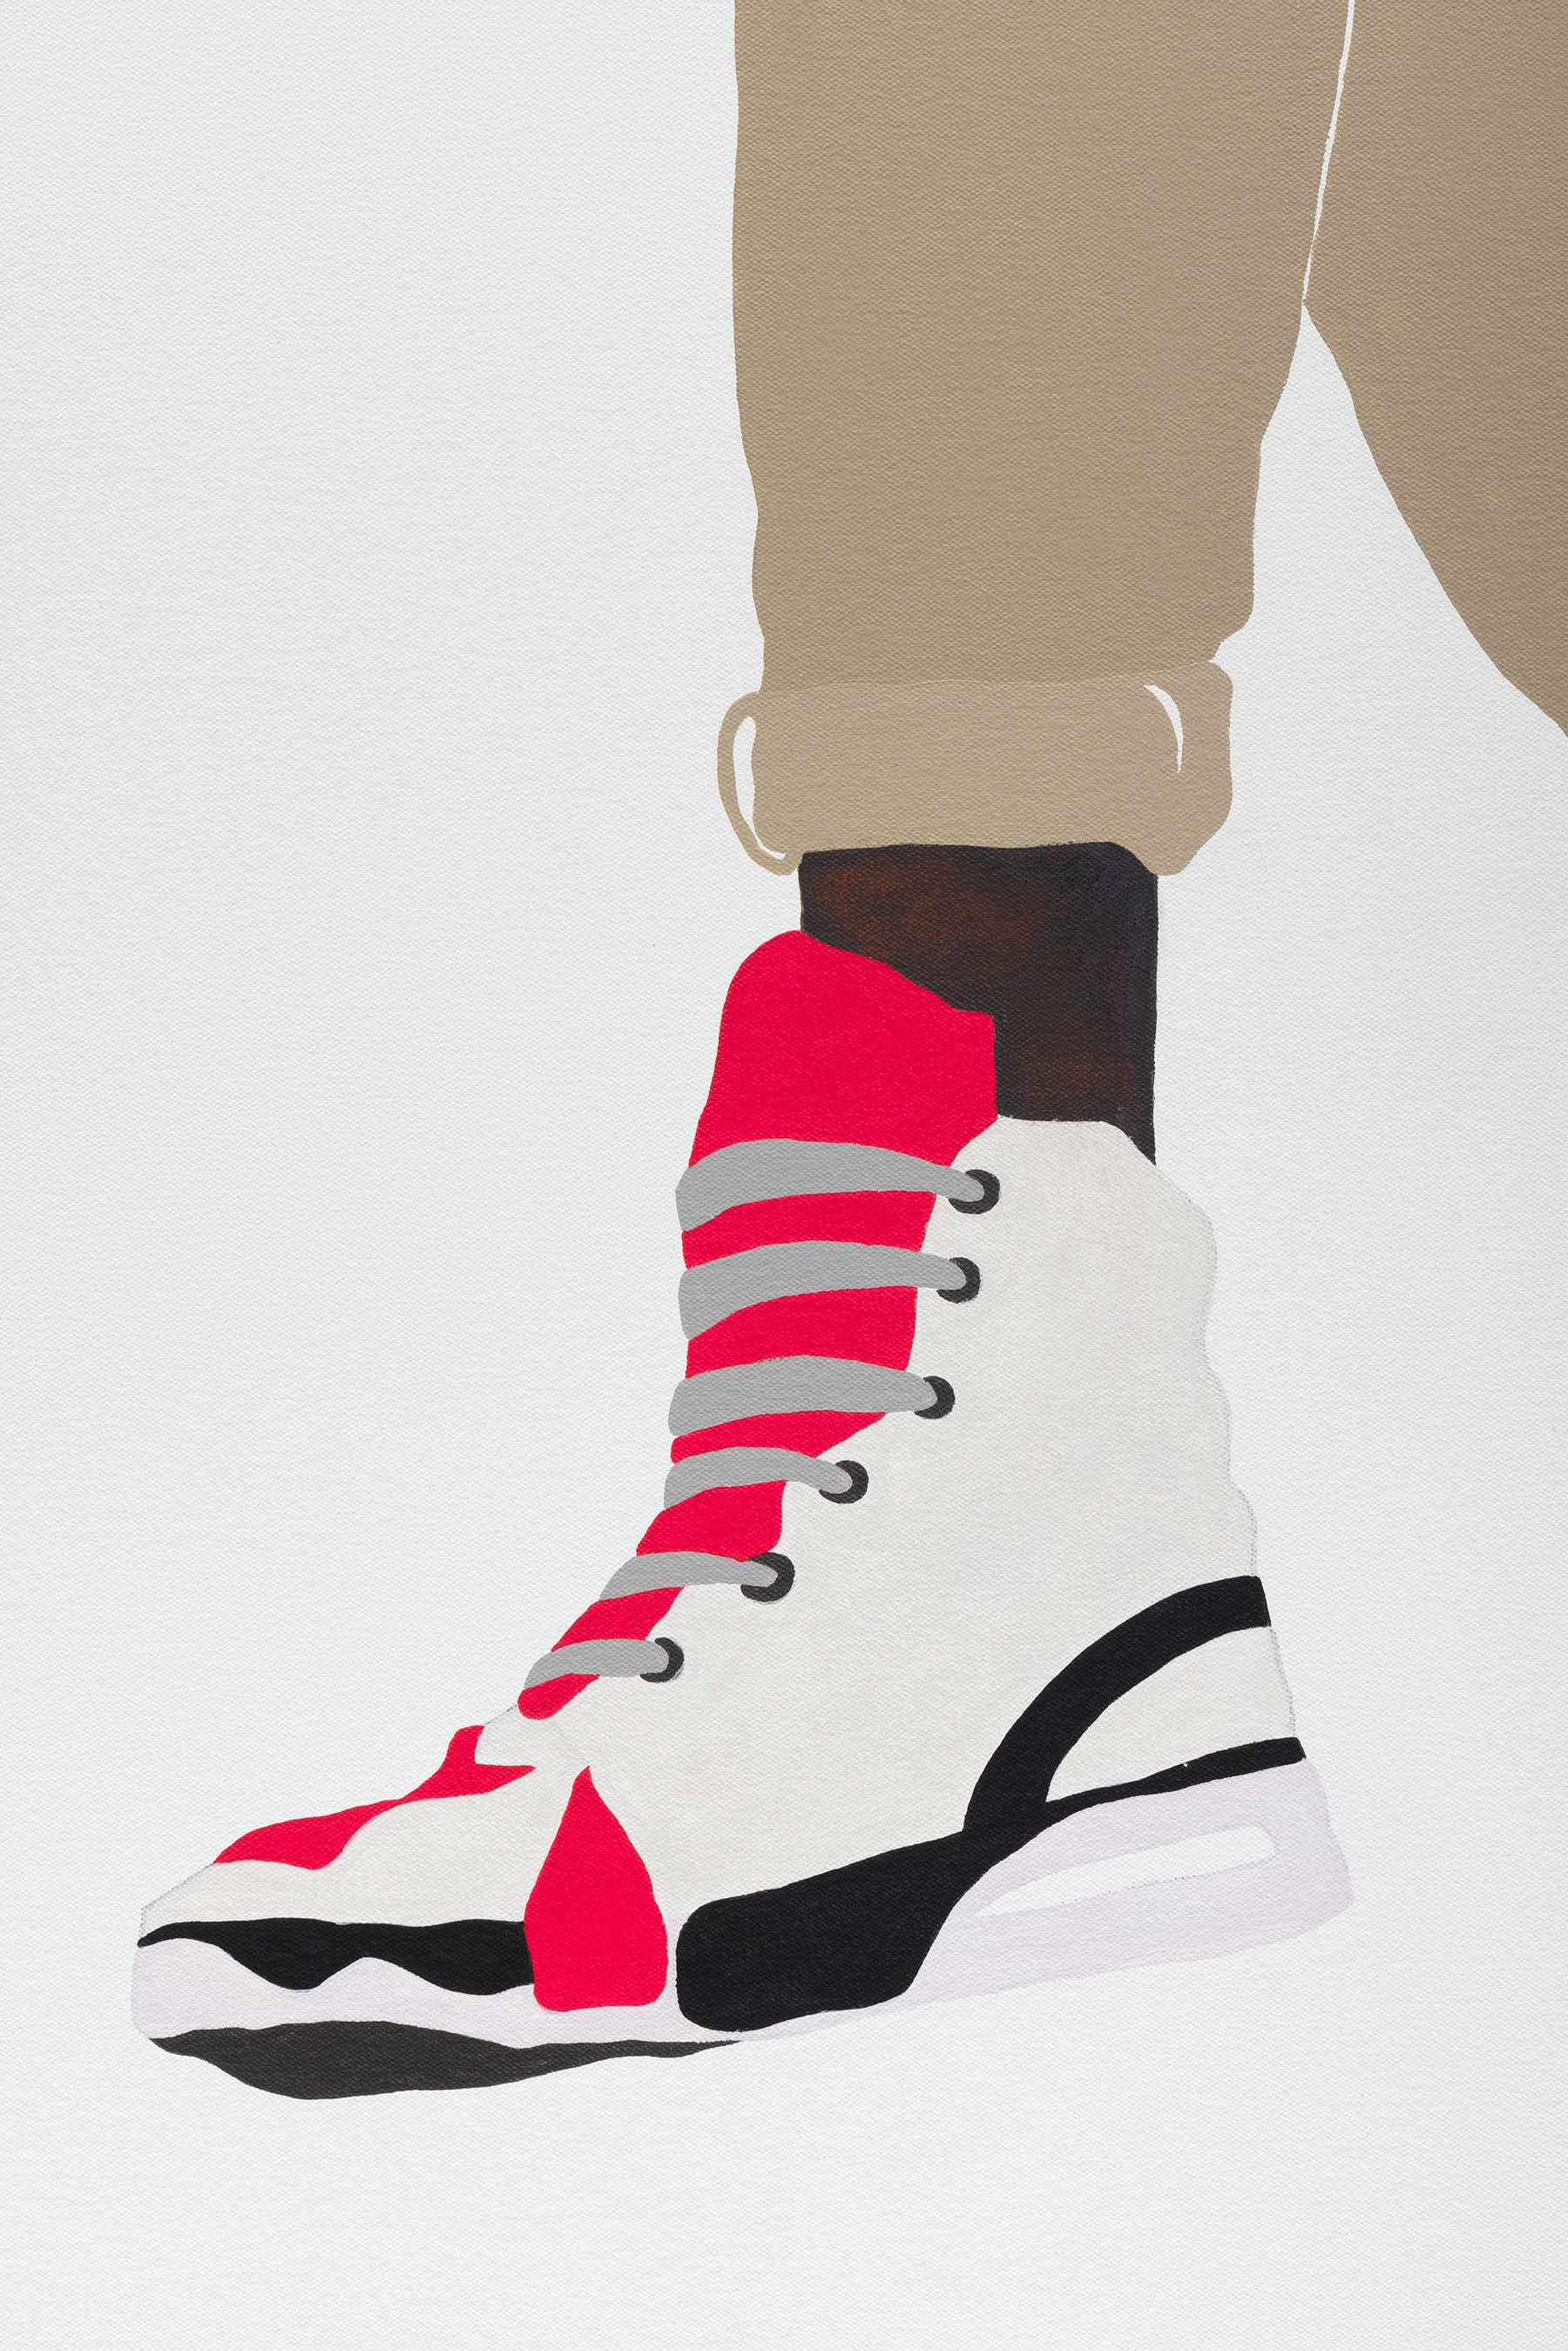 """Deborah Roberts """"Notorious Act: resting,"""" 2021 Mixed media collage on canvas 65"""" x 45"""" [HxW] (165.1 x 114.3 cm); 66 ¹⁄₂"""" x 46 ¹⁄₂"""" x 2 ¹⁄₄"""" [HxWxD] (168.91 x 118.11 x 5.71 cm) framed Inventory #ROB455 Courtesy of the artist and Vielmetter Los Angeles Photo credit: Jeff McLane"""